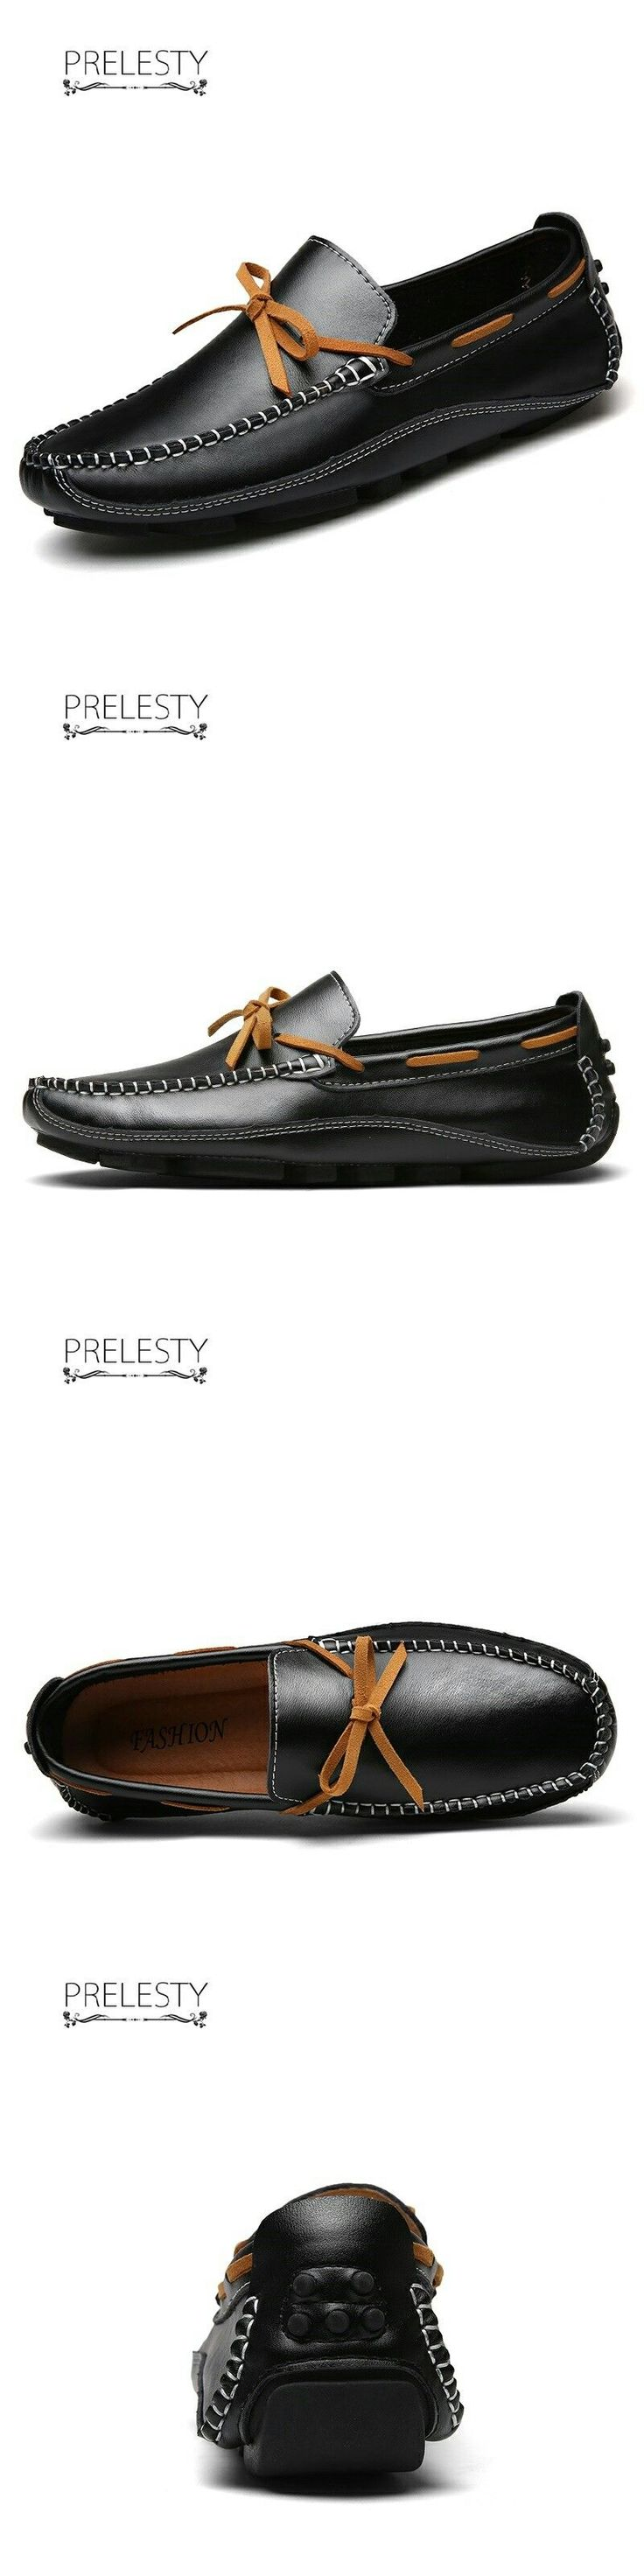 US $ Prelesty Natural Leather Boat Shoes Mens Top Sider Driving Shoes - http://sorihe.com/mensshoes/2018/03/04/us-prelesty-natural-leather-boat-shoes-mens-top-sider-driving-shoes/